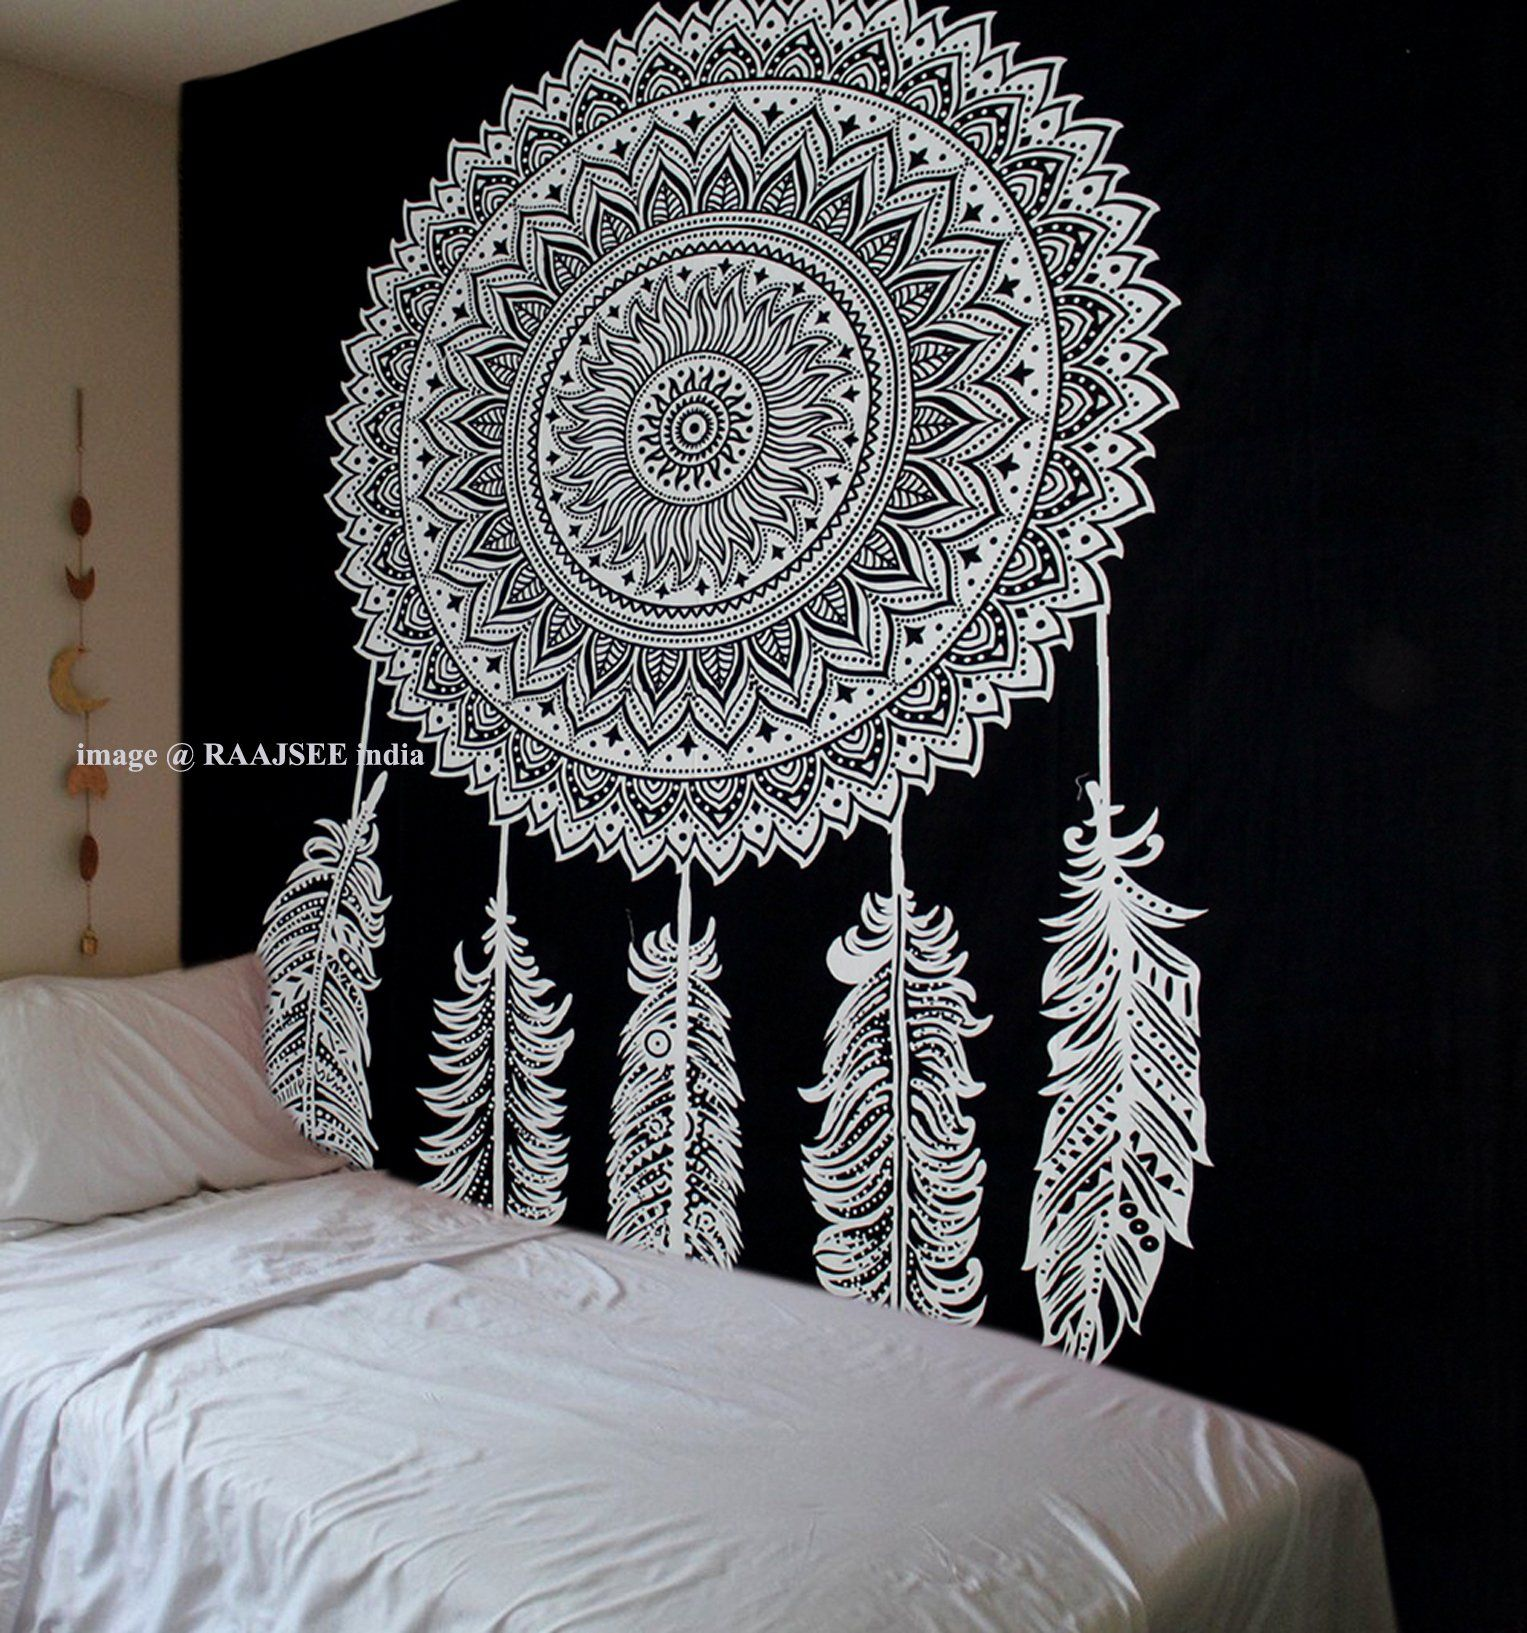 Tapestry Black And White Dream Catcher Mandala Cotton Wall Hanginghippie